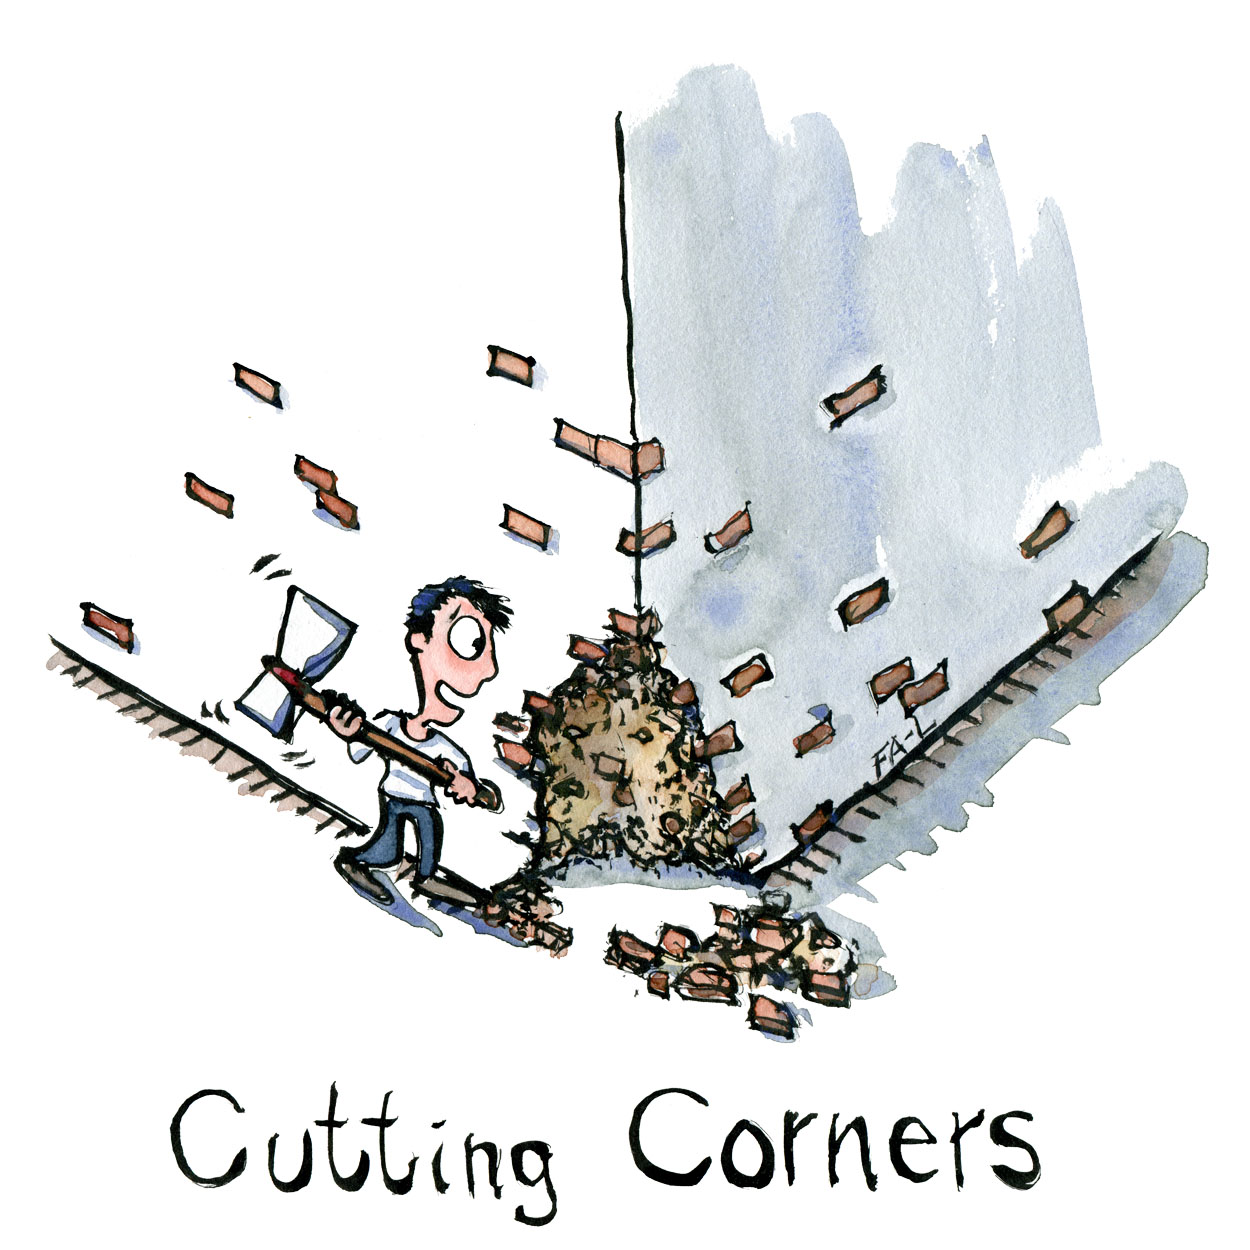 Man standing by the corner of a building cutting the corner with an axe. Illustration by Frits Ahlefeldt